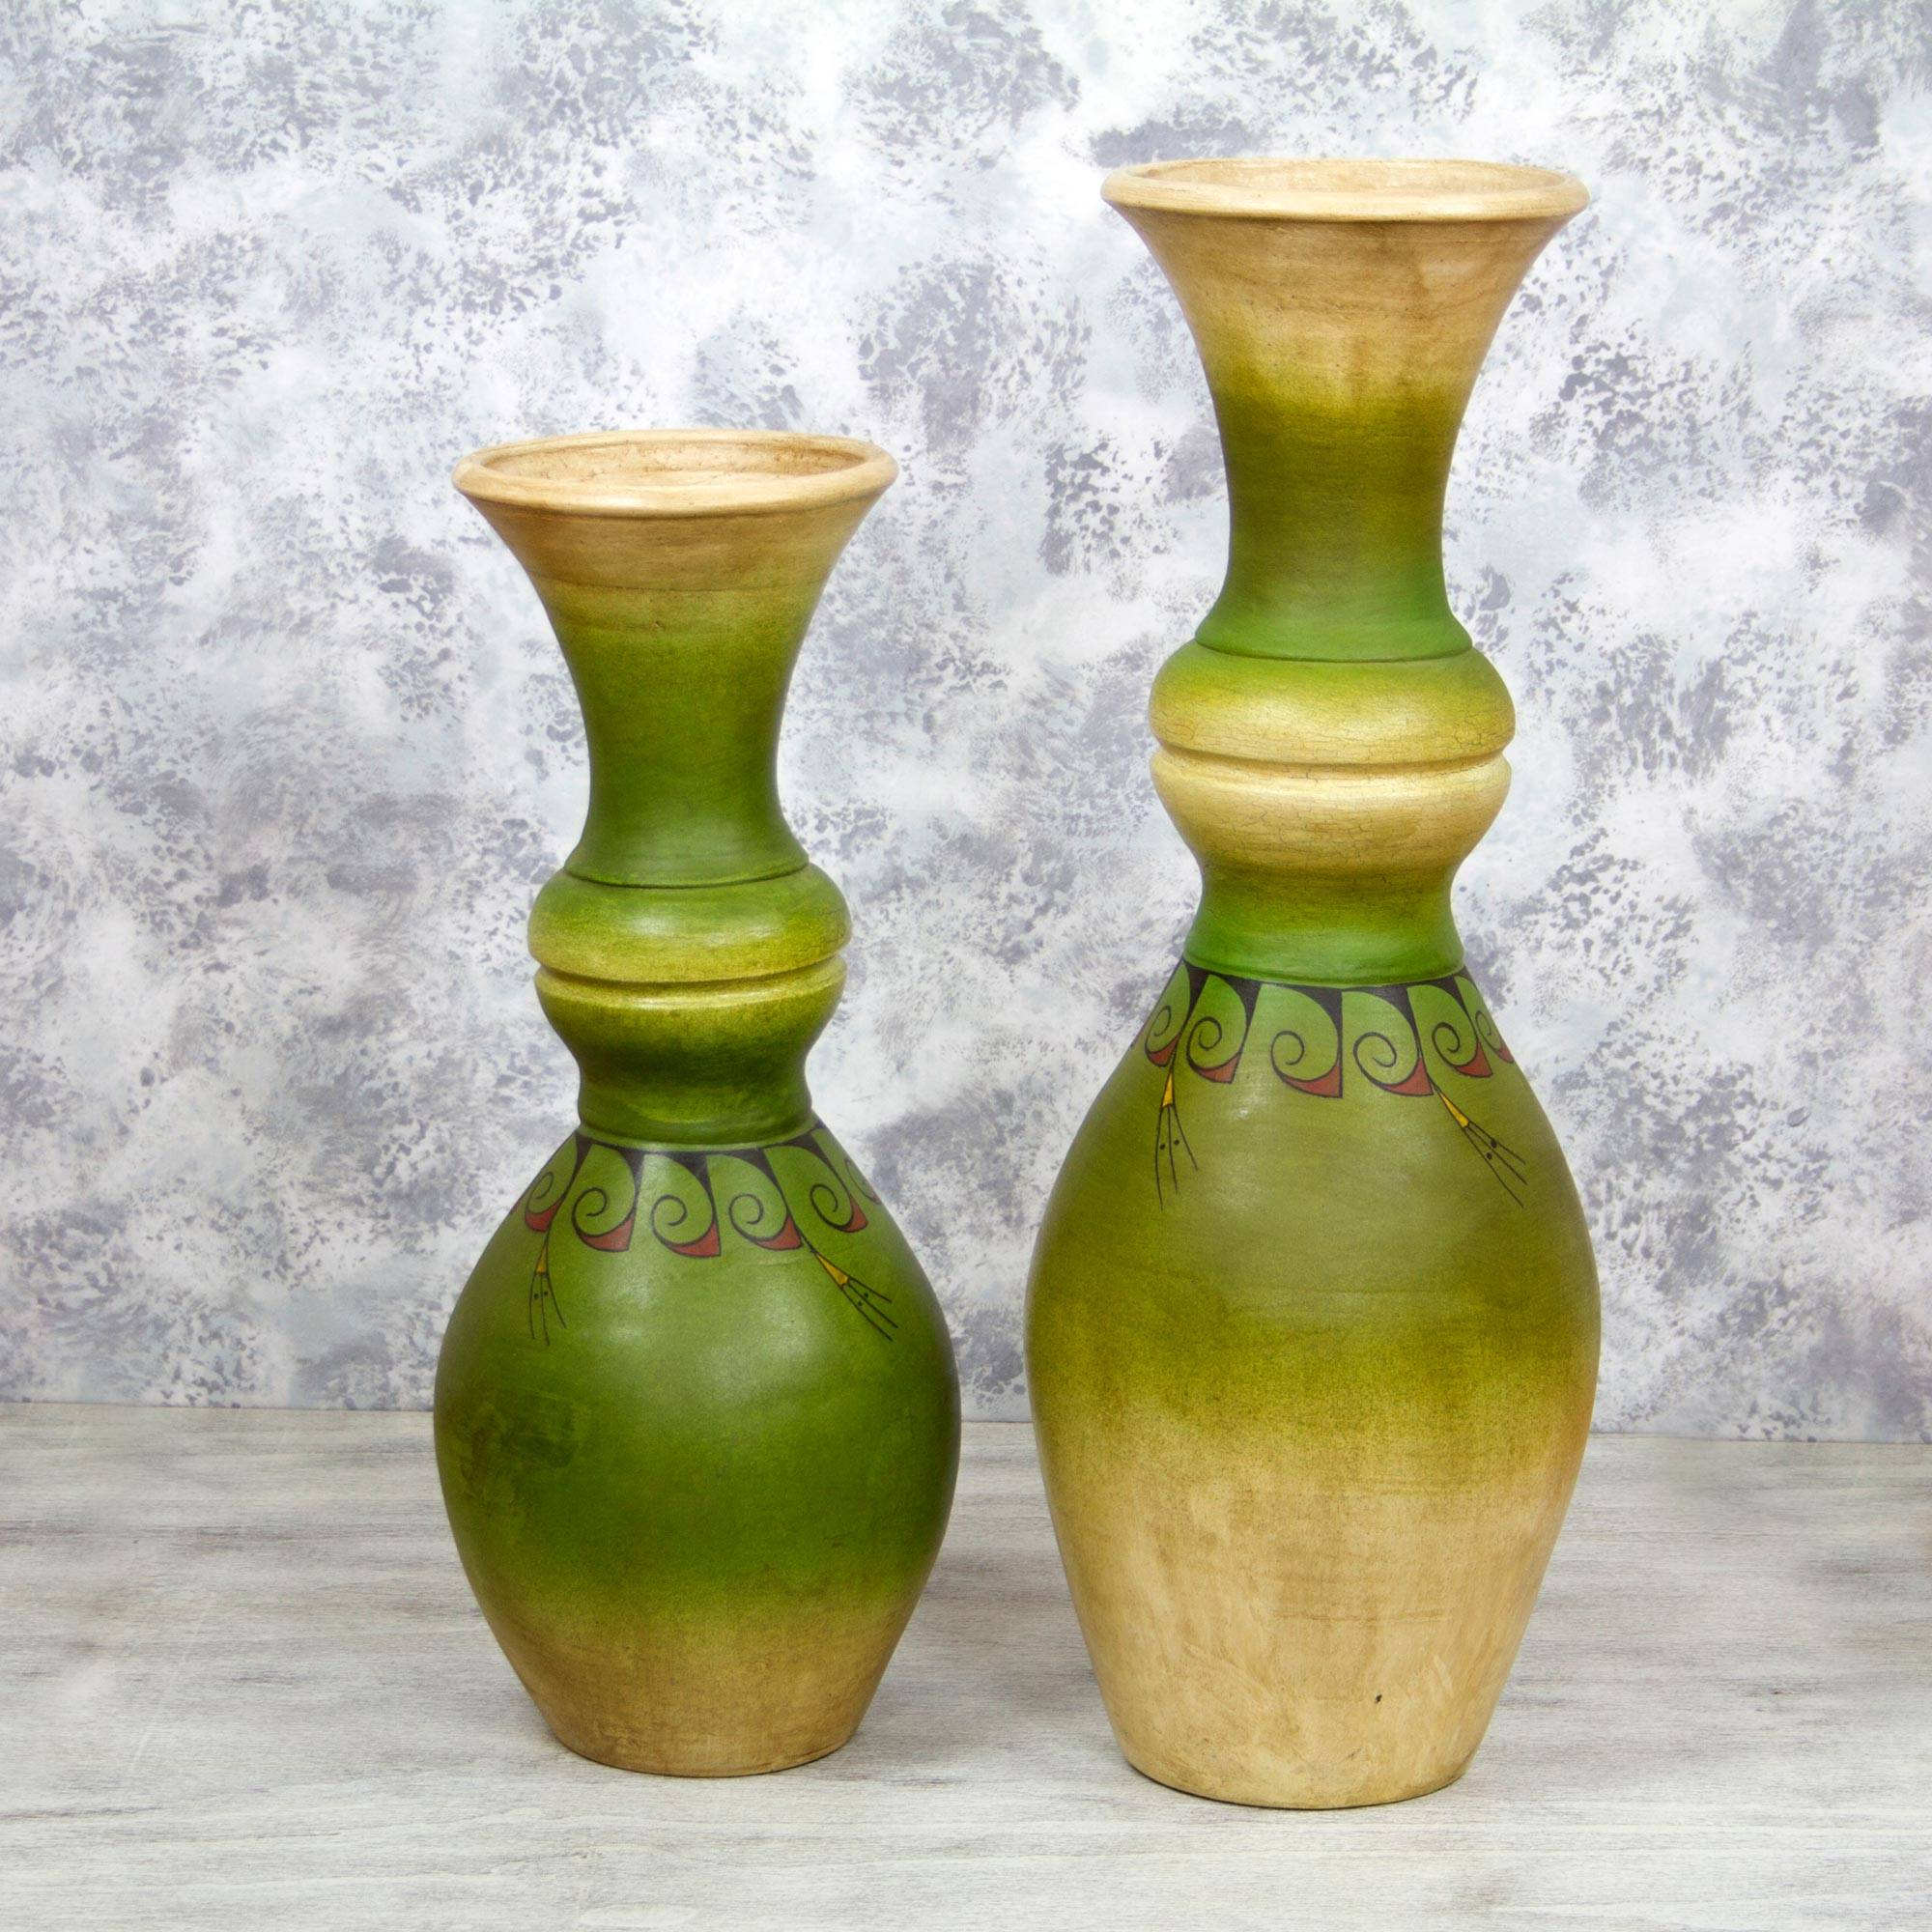 Pear Motif Decorative Ceramic Vases In Green (Pair), U0027Ripe Pearsu0027